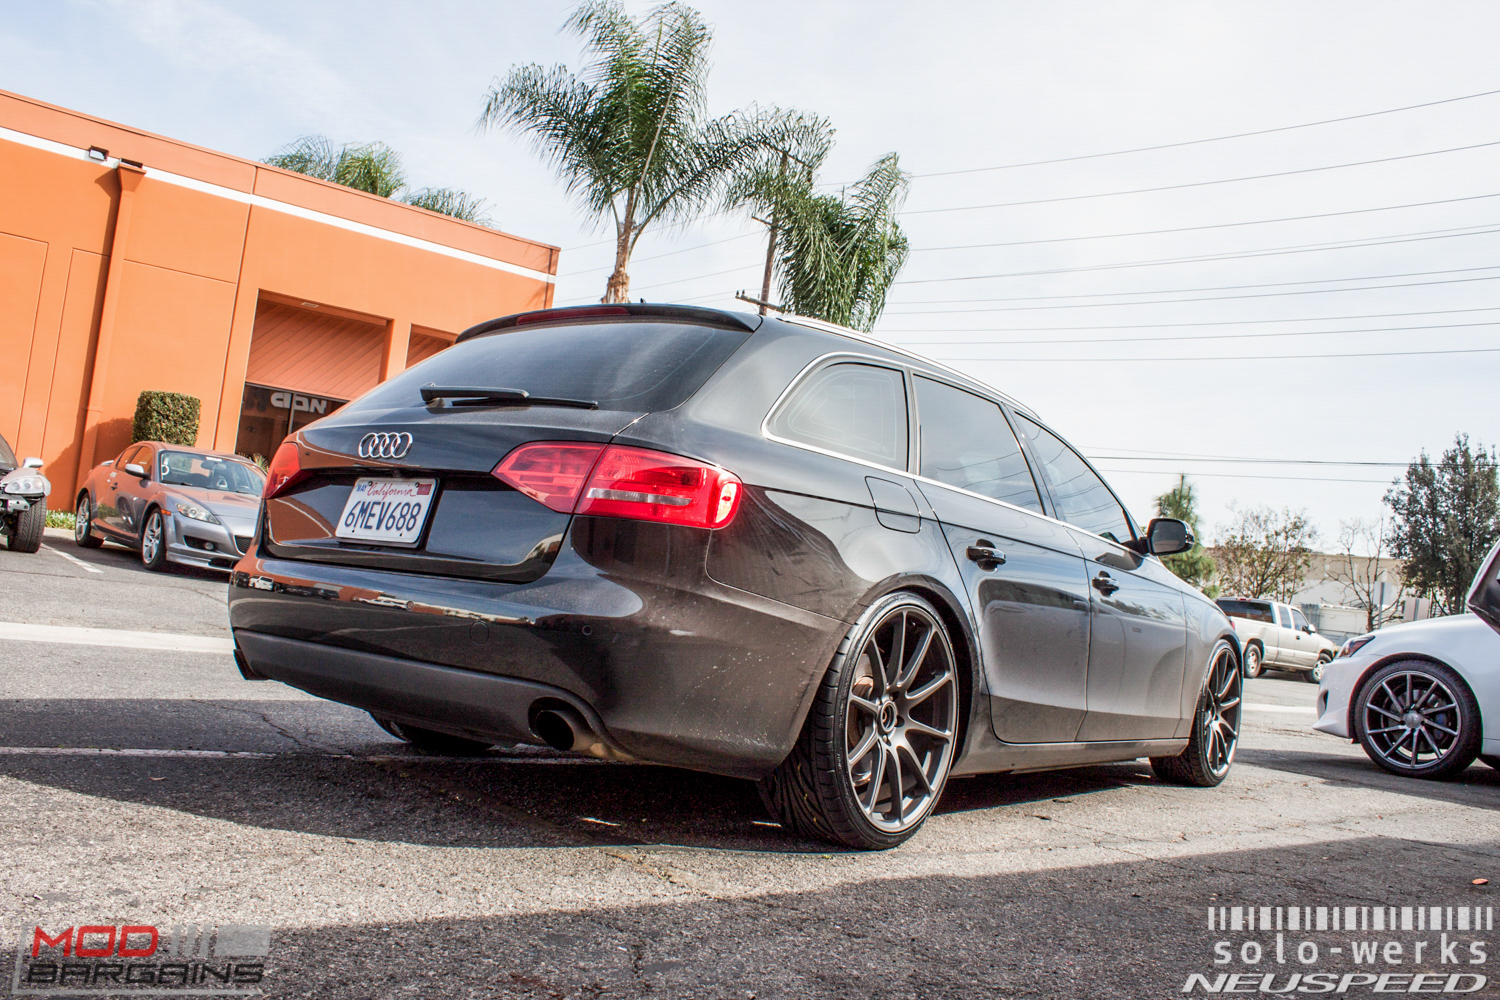 B8 Audi A4 Avant on Solo-Werks Coilovers gets RSe102 Rims